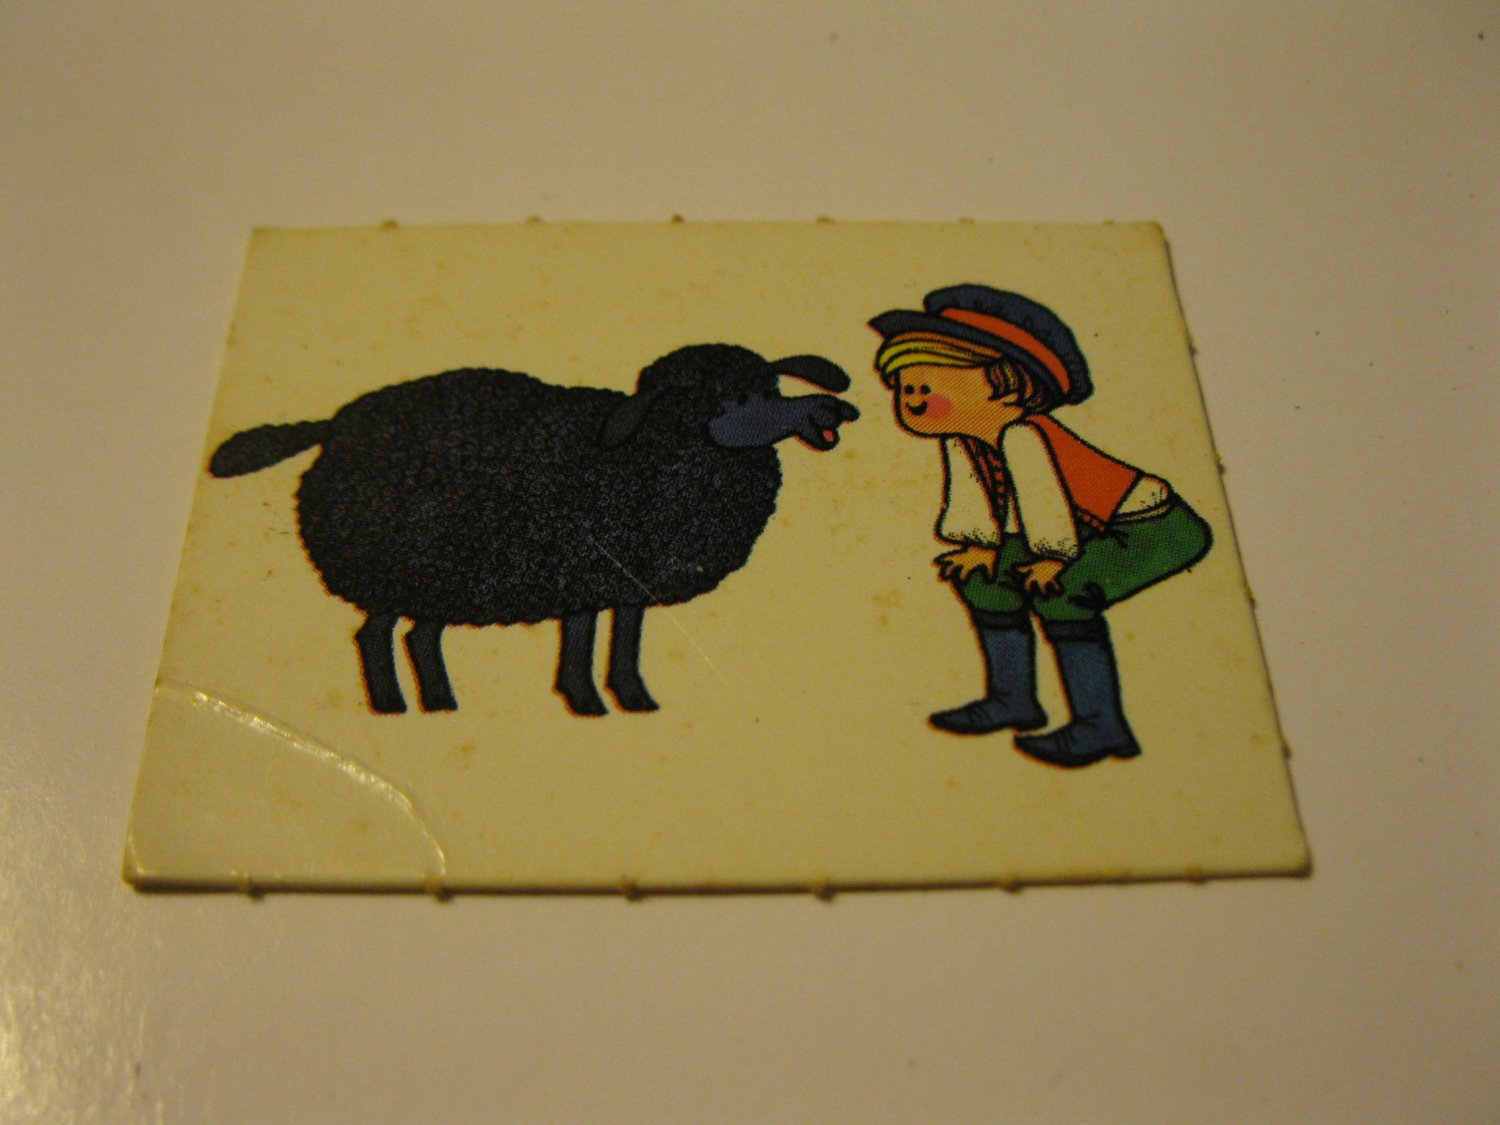 1971 Mother Goose Board Game Piece: Game card #7